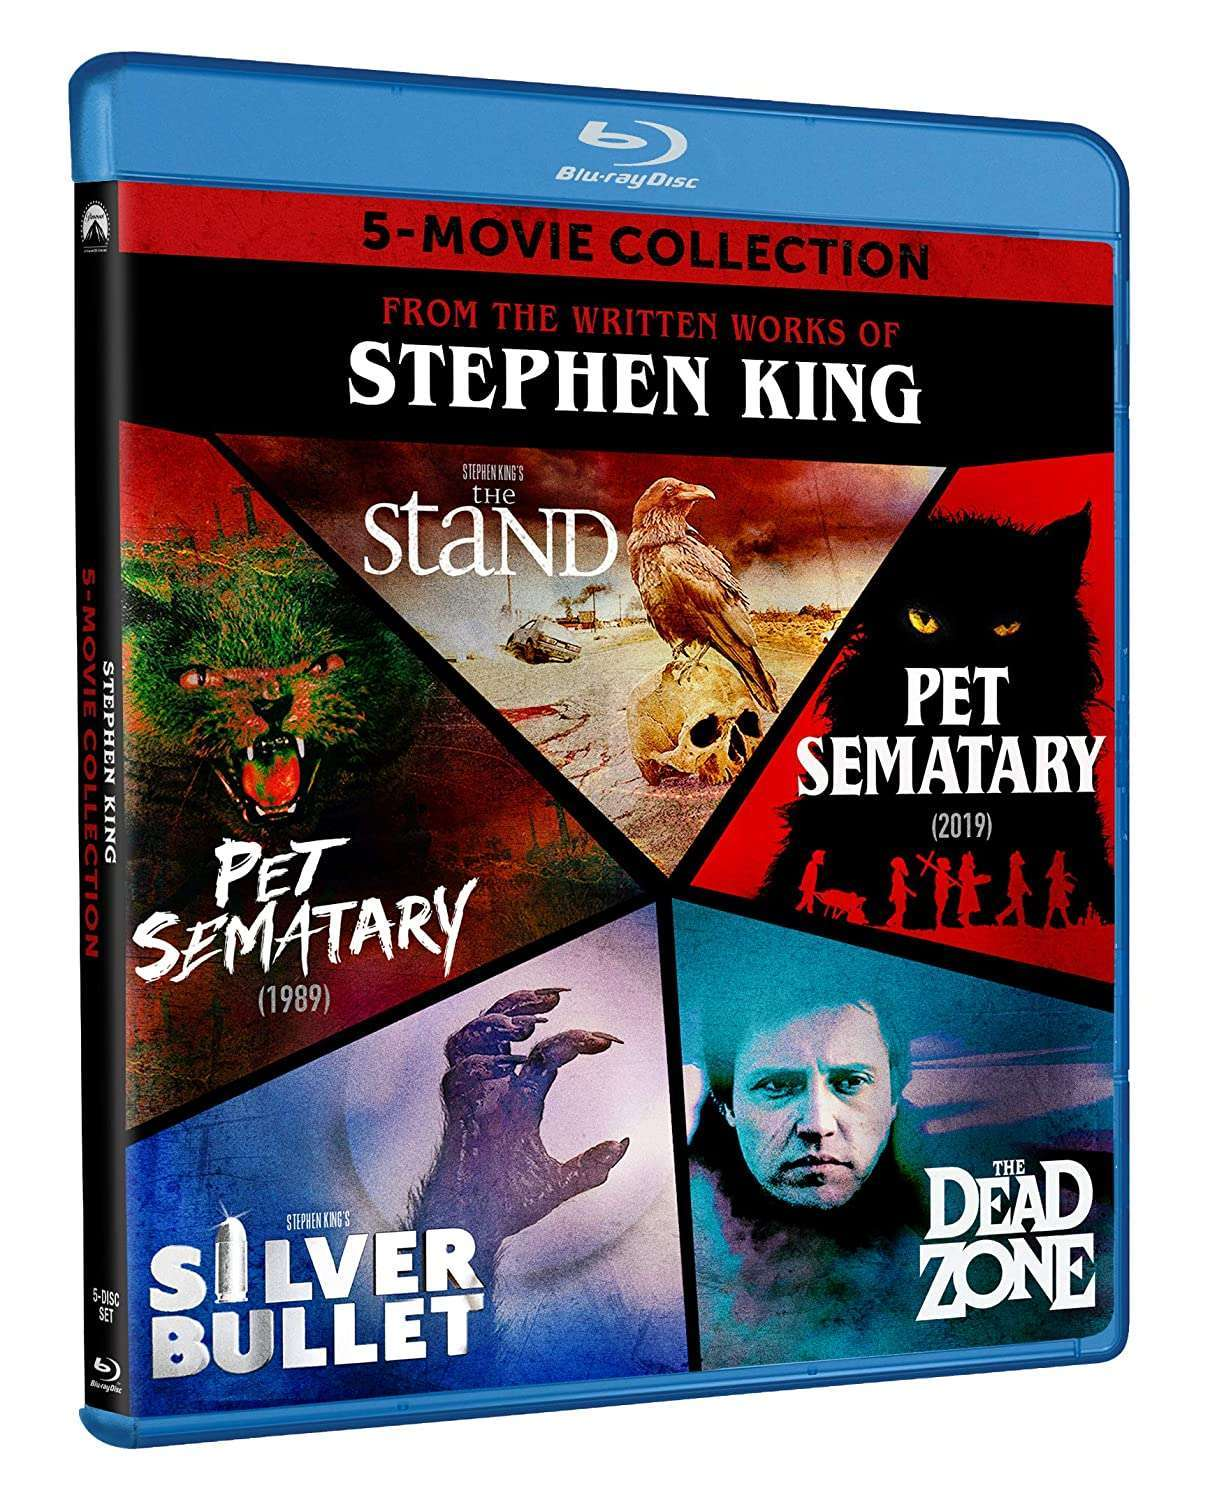 stephen-king-blu-ray